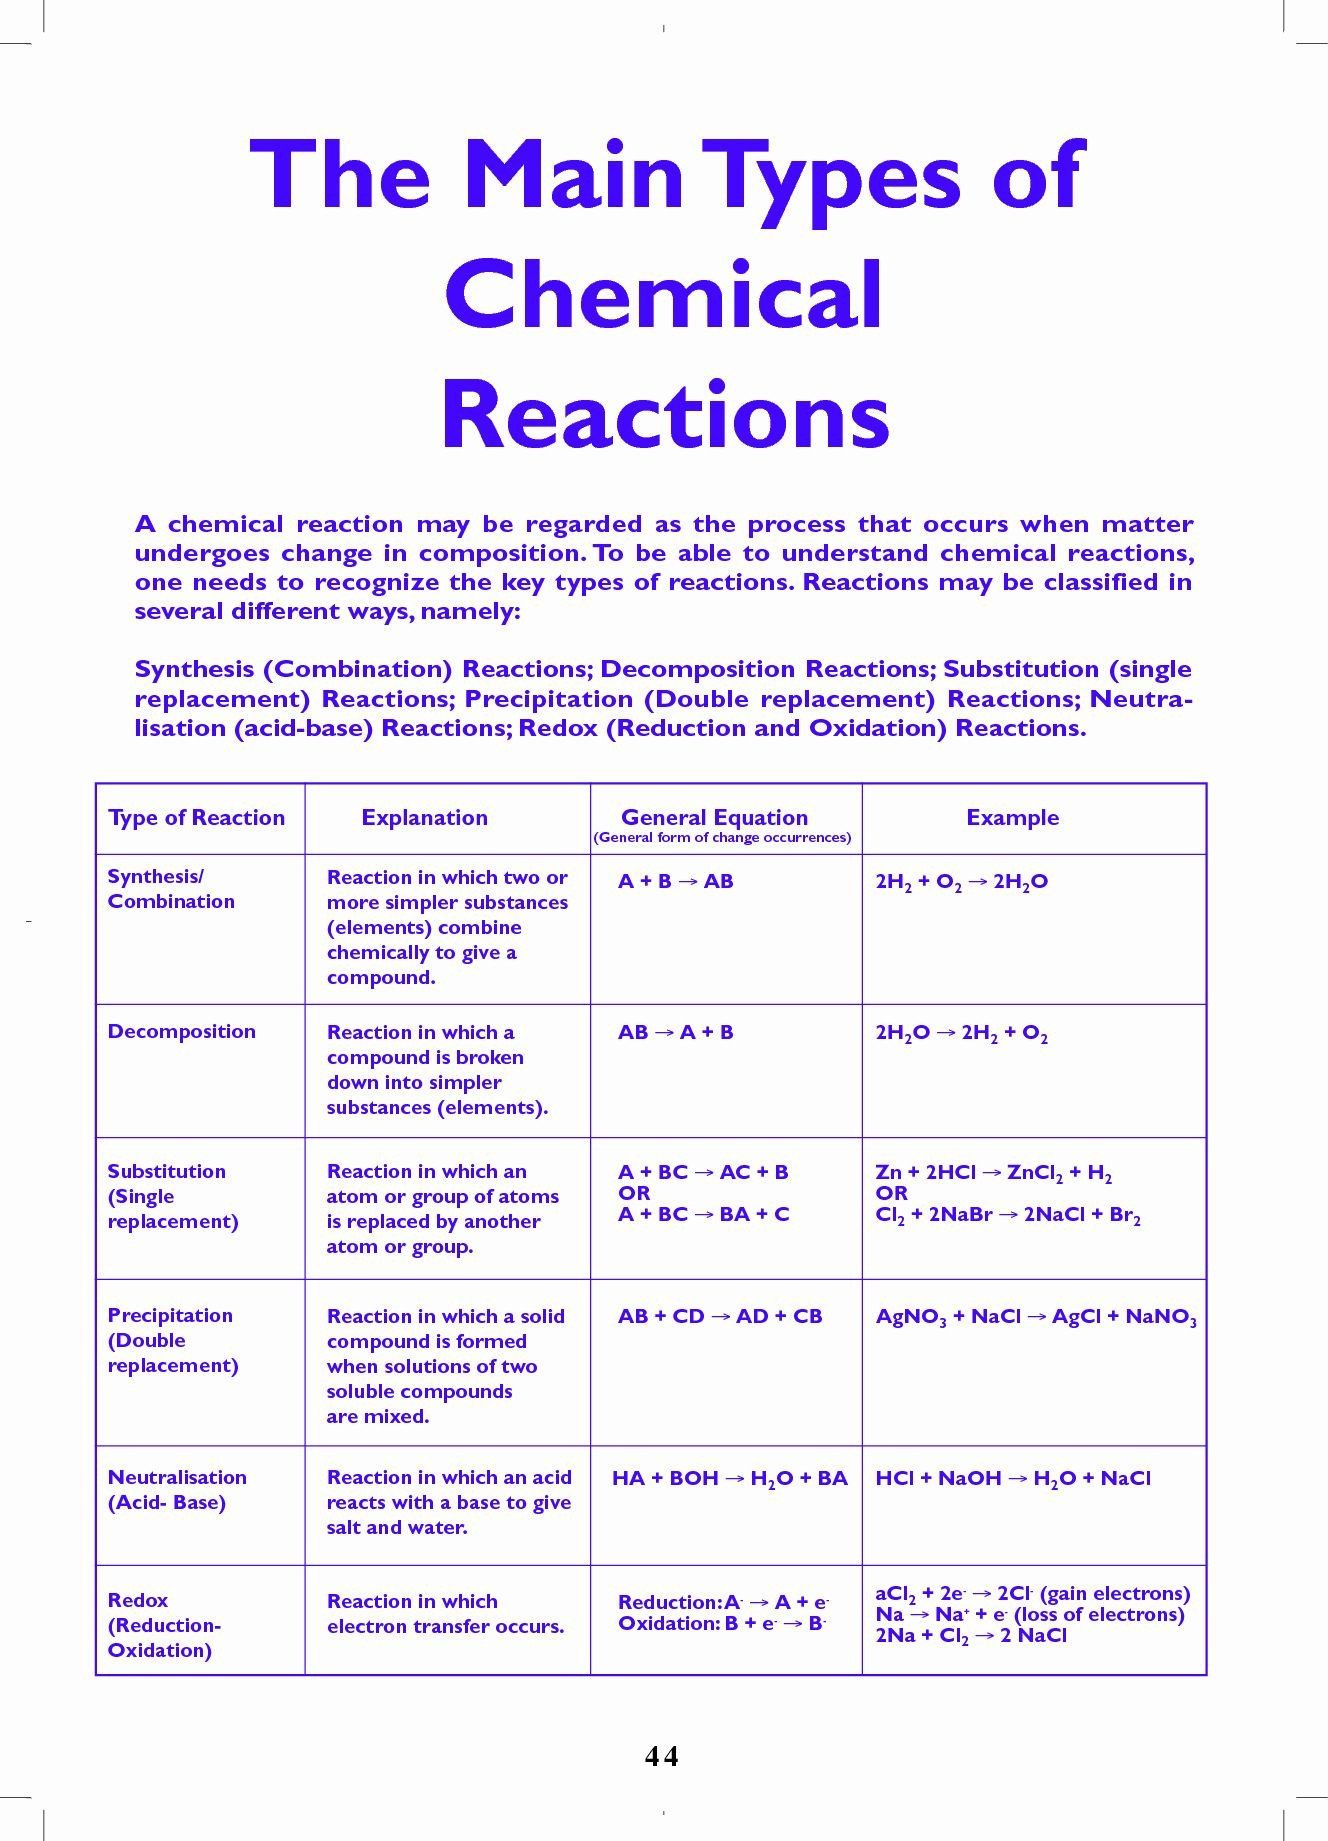 Composition Of Matter Worksheet Answers 50 Chemical Reactions Types Worksheet In 2020 In 2020 Chemistry Lessons Science Chemistry Teaching Chemistry